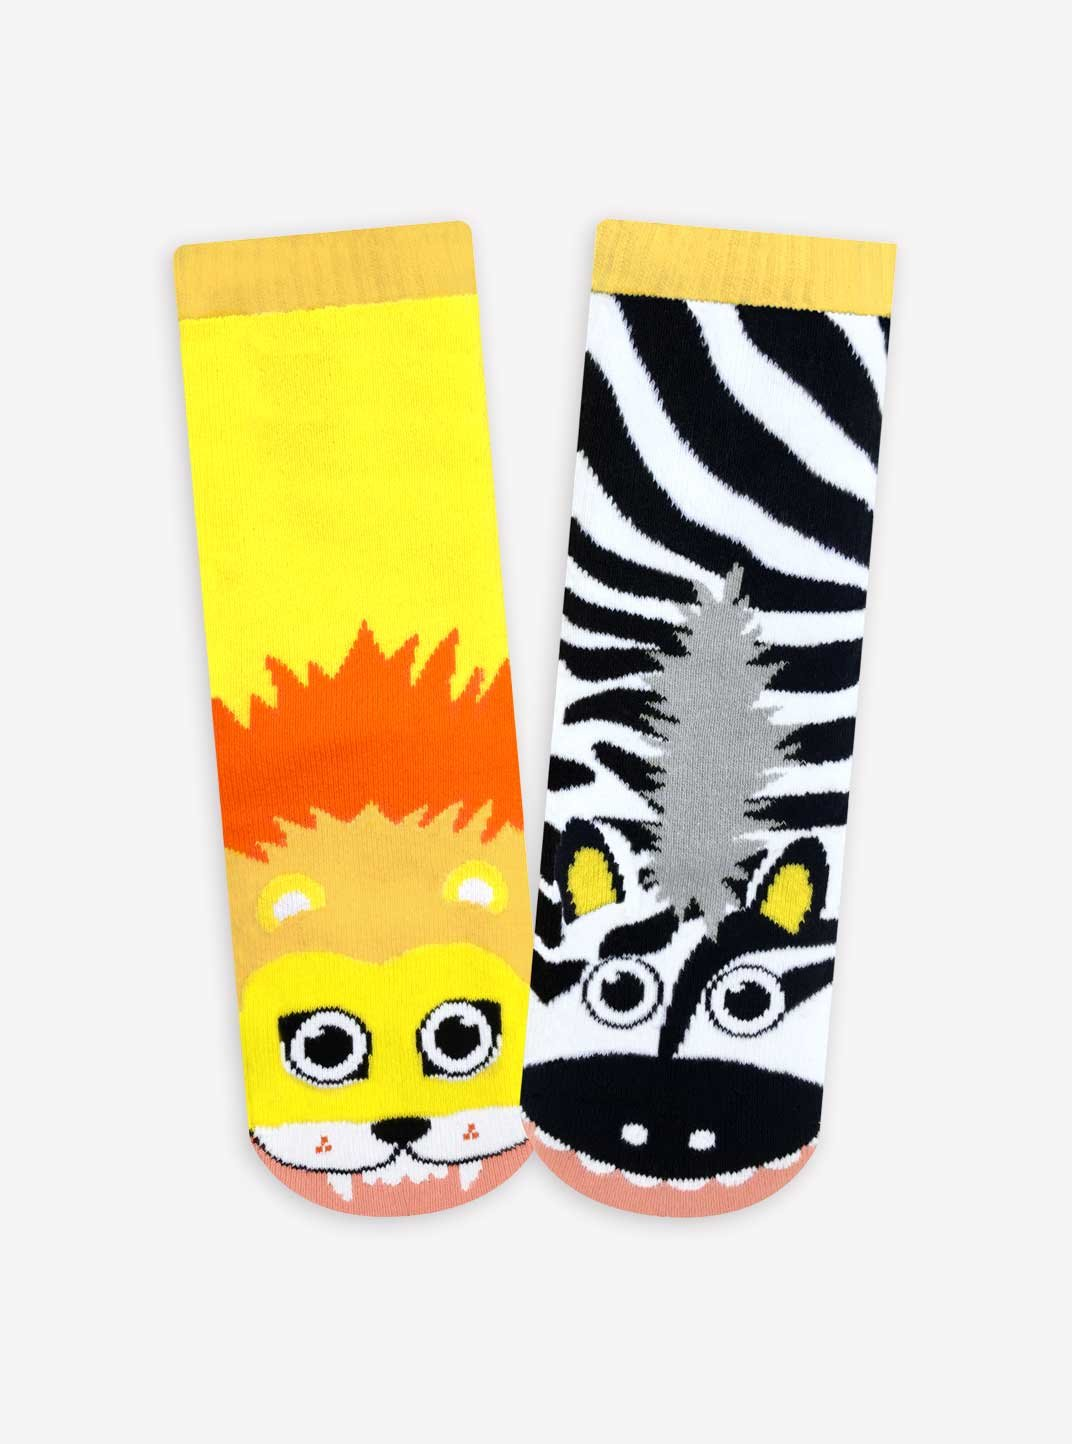 Lion and Zebra, T-Rex and Triceratops, Polar Bear and Penguin - Toddler Sock Set - Mighty Mates Mismatched Friends 3-Pack by Pals Socks (Image #4)